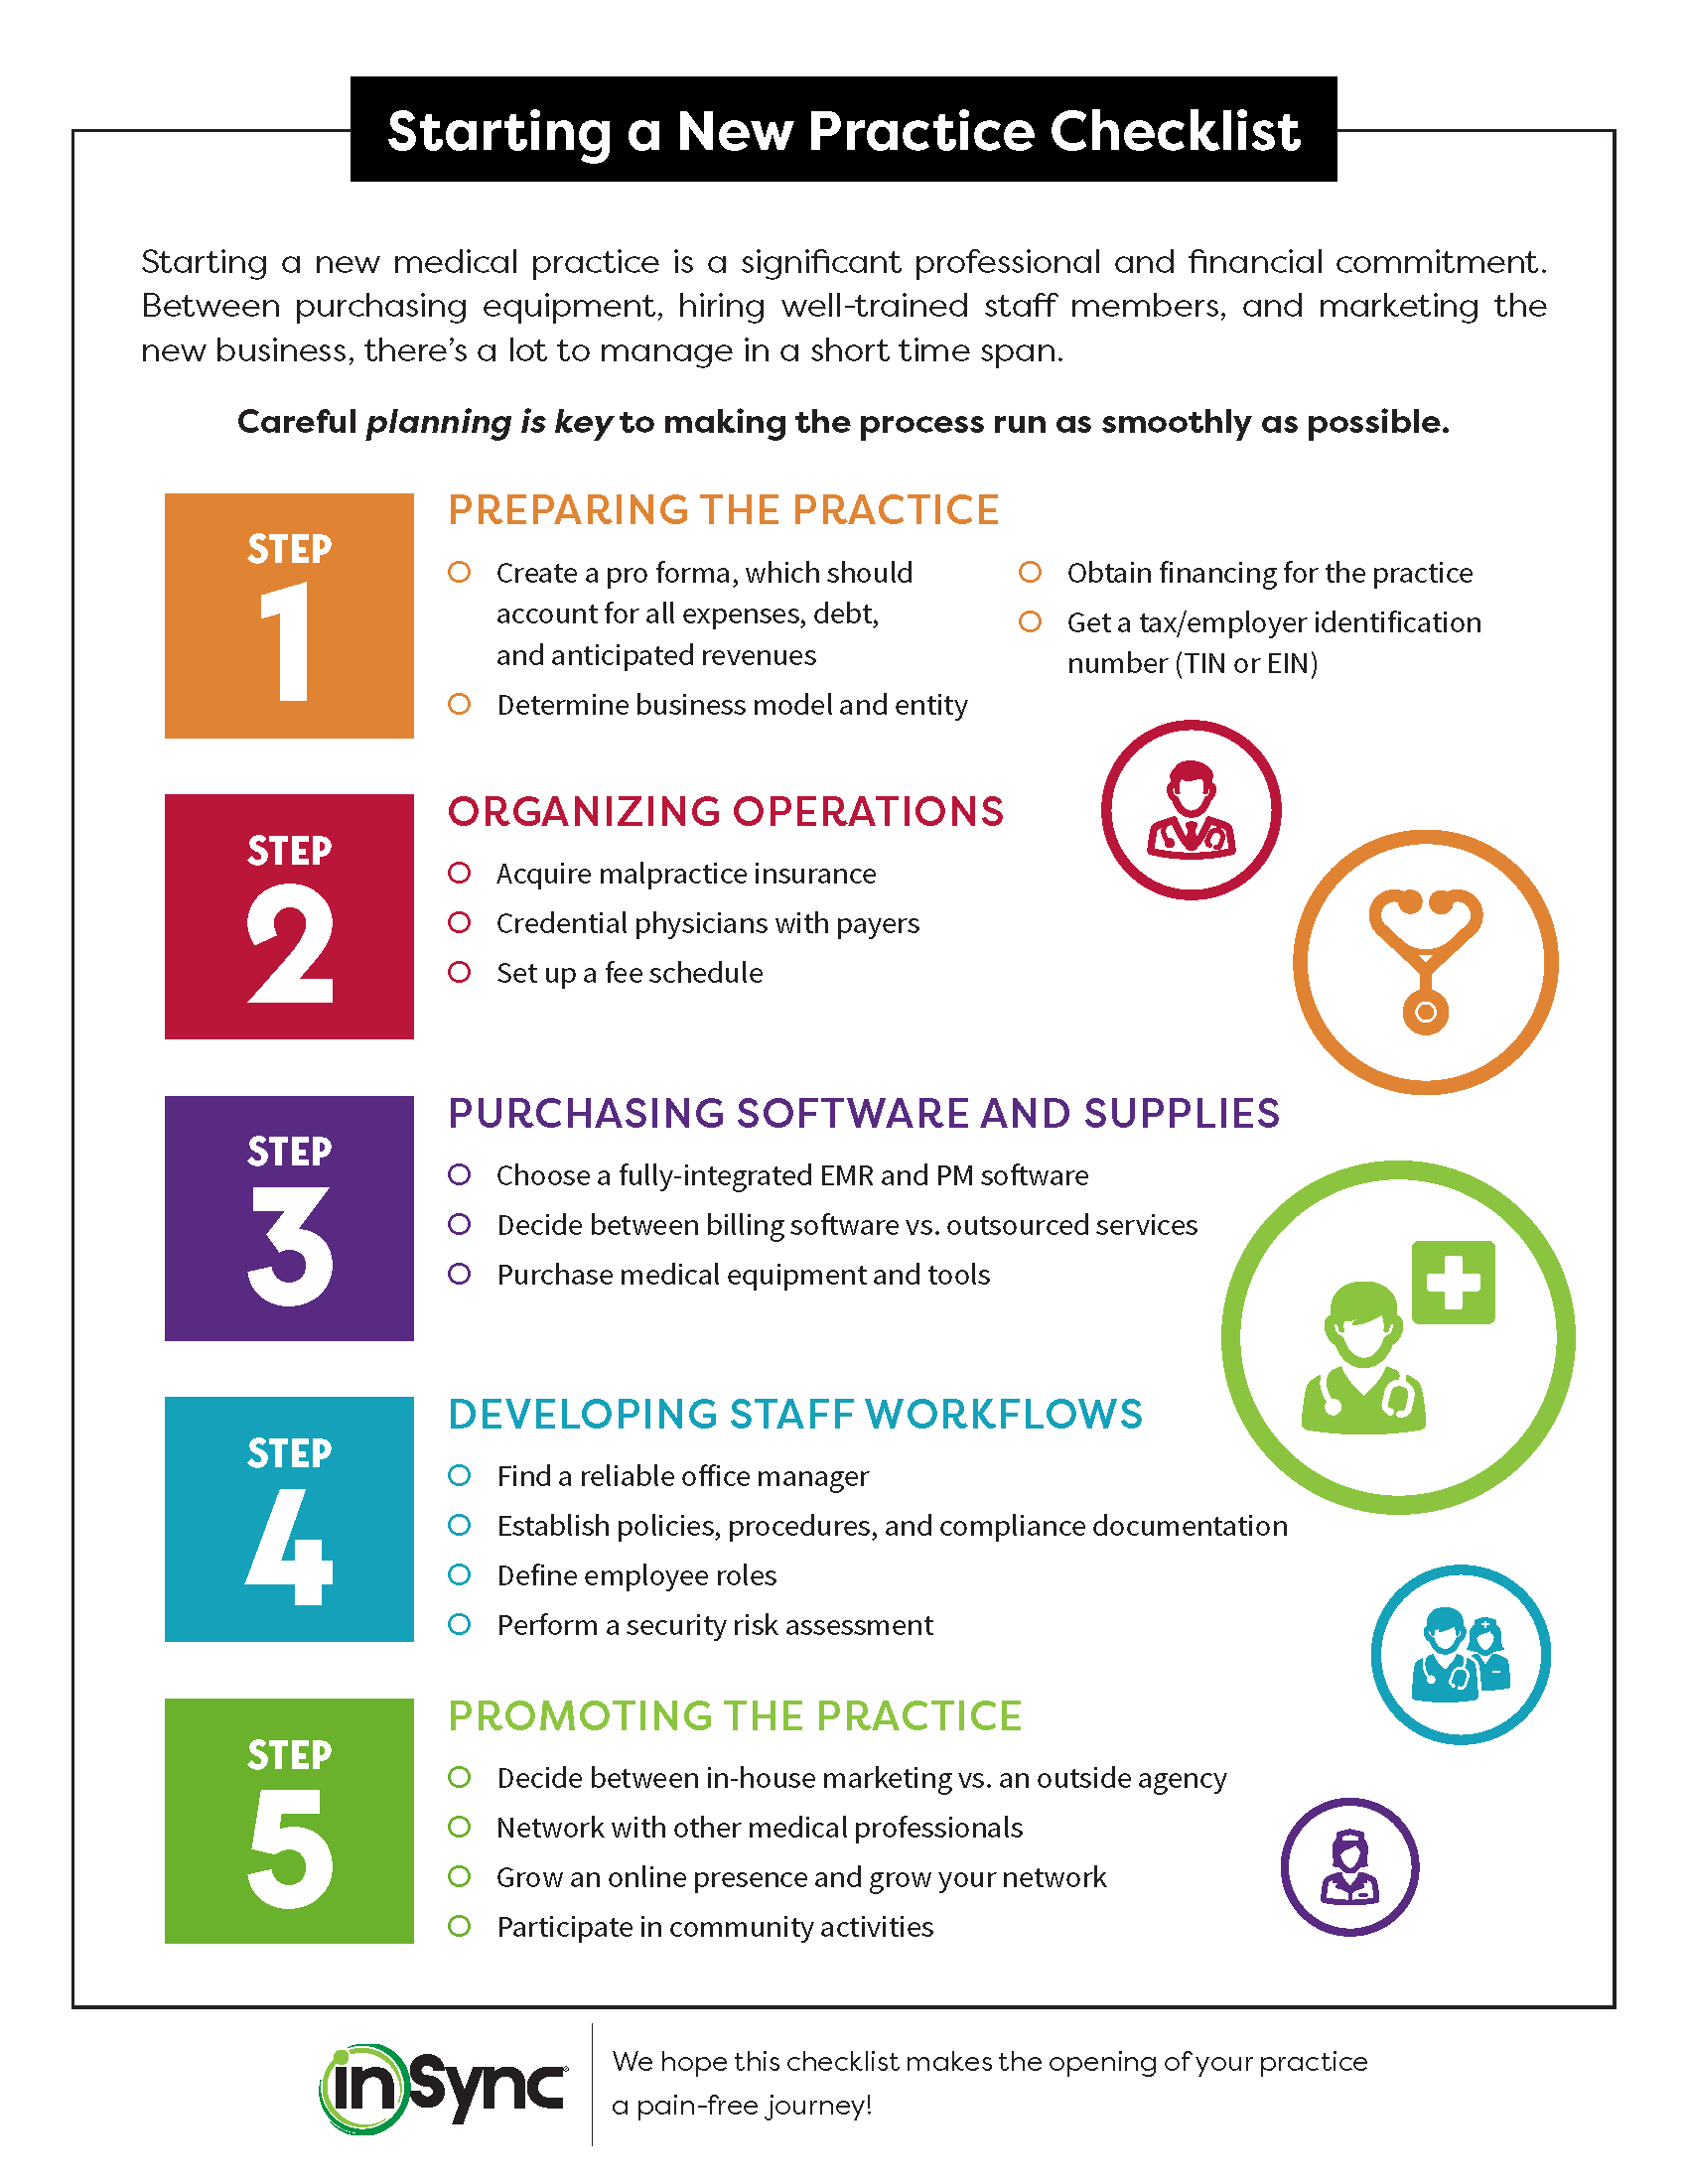 Infographic starting a new practice checklist starting a new practice checklistv3 altavistaventures Choice Image